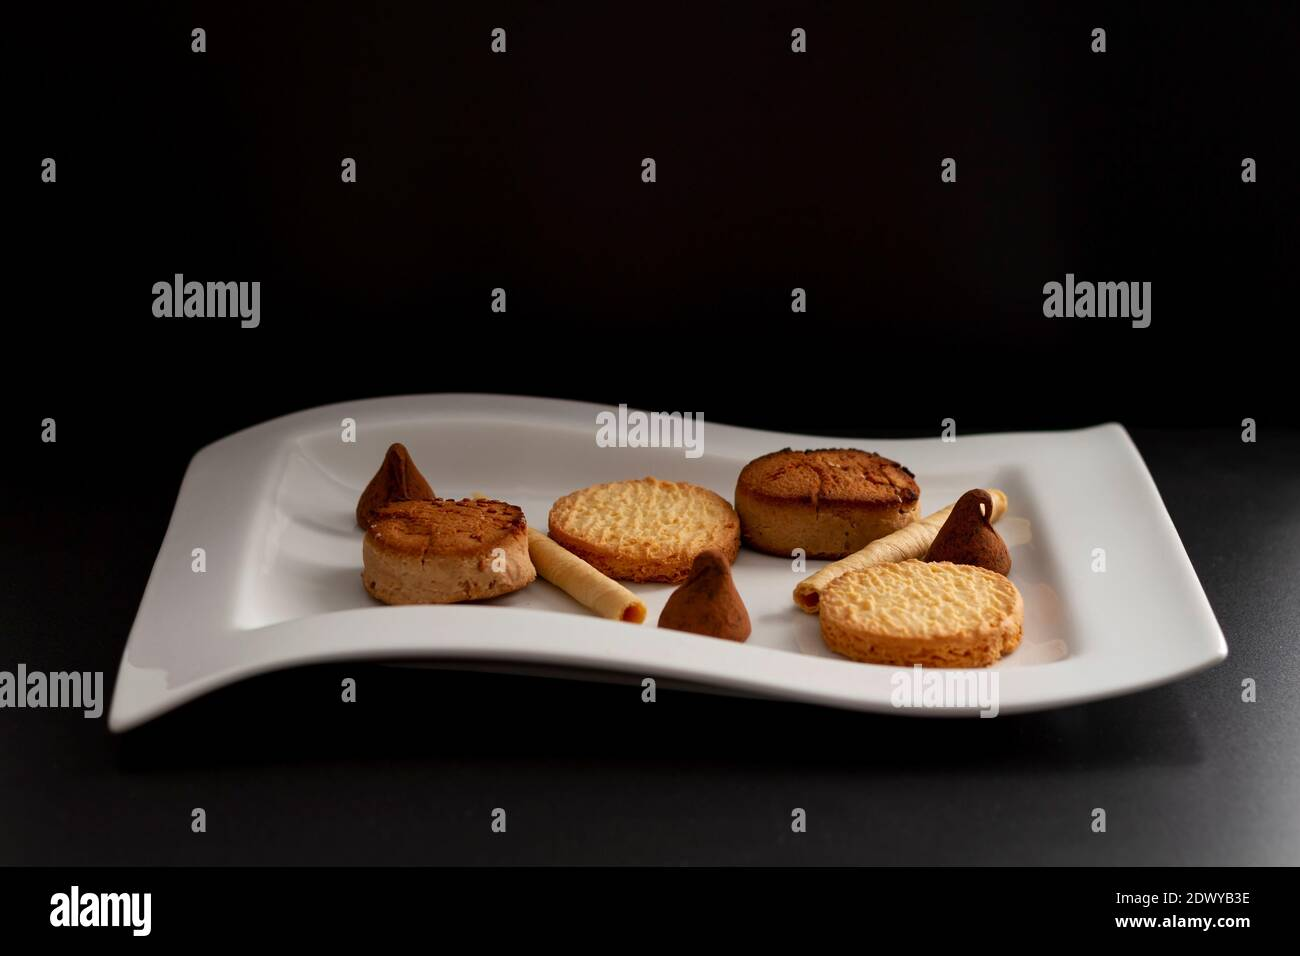 Spanish Cookies Spain High Resolution Stock Photography and Images ...